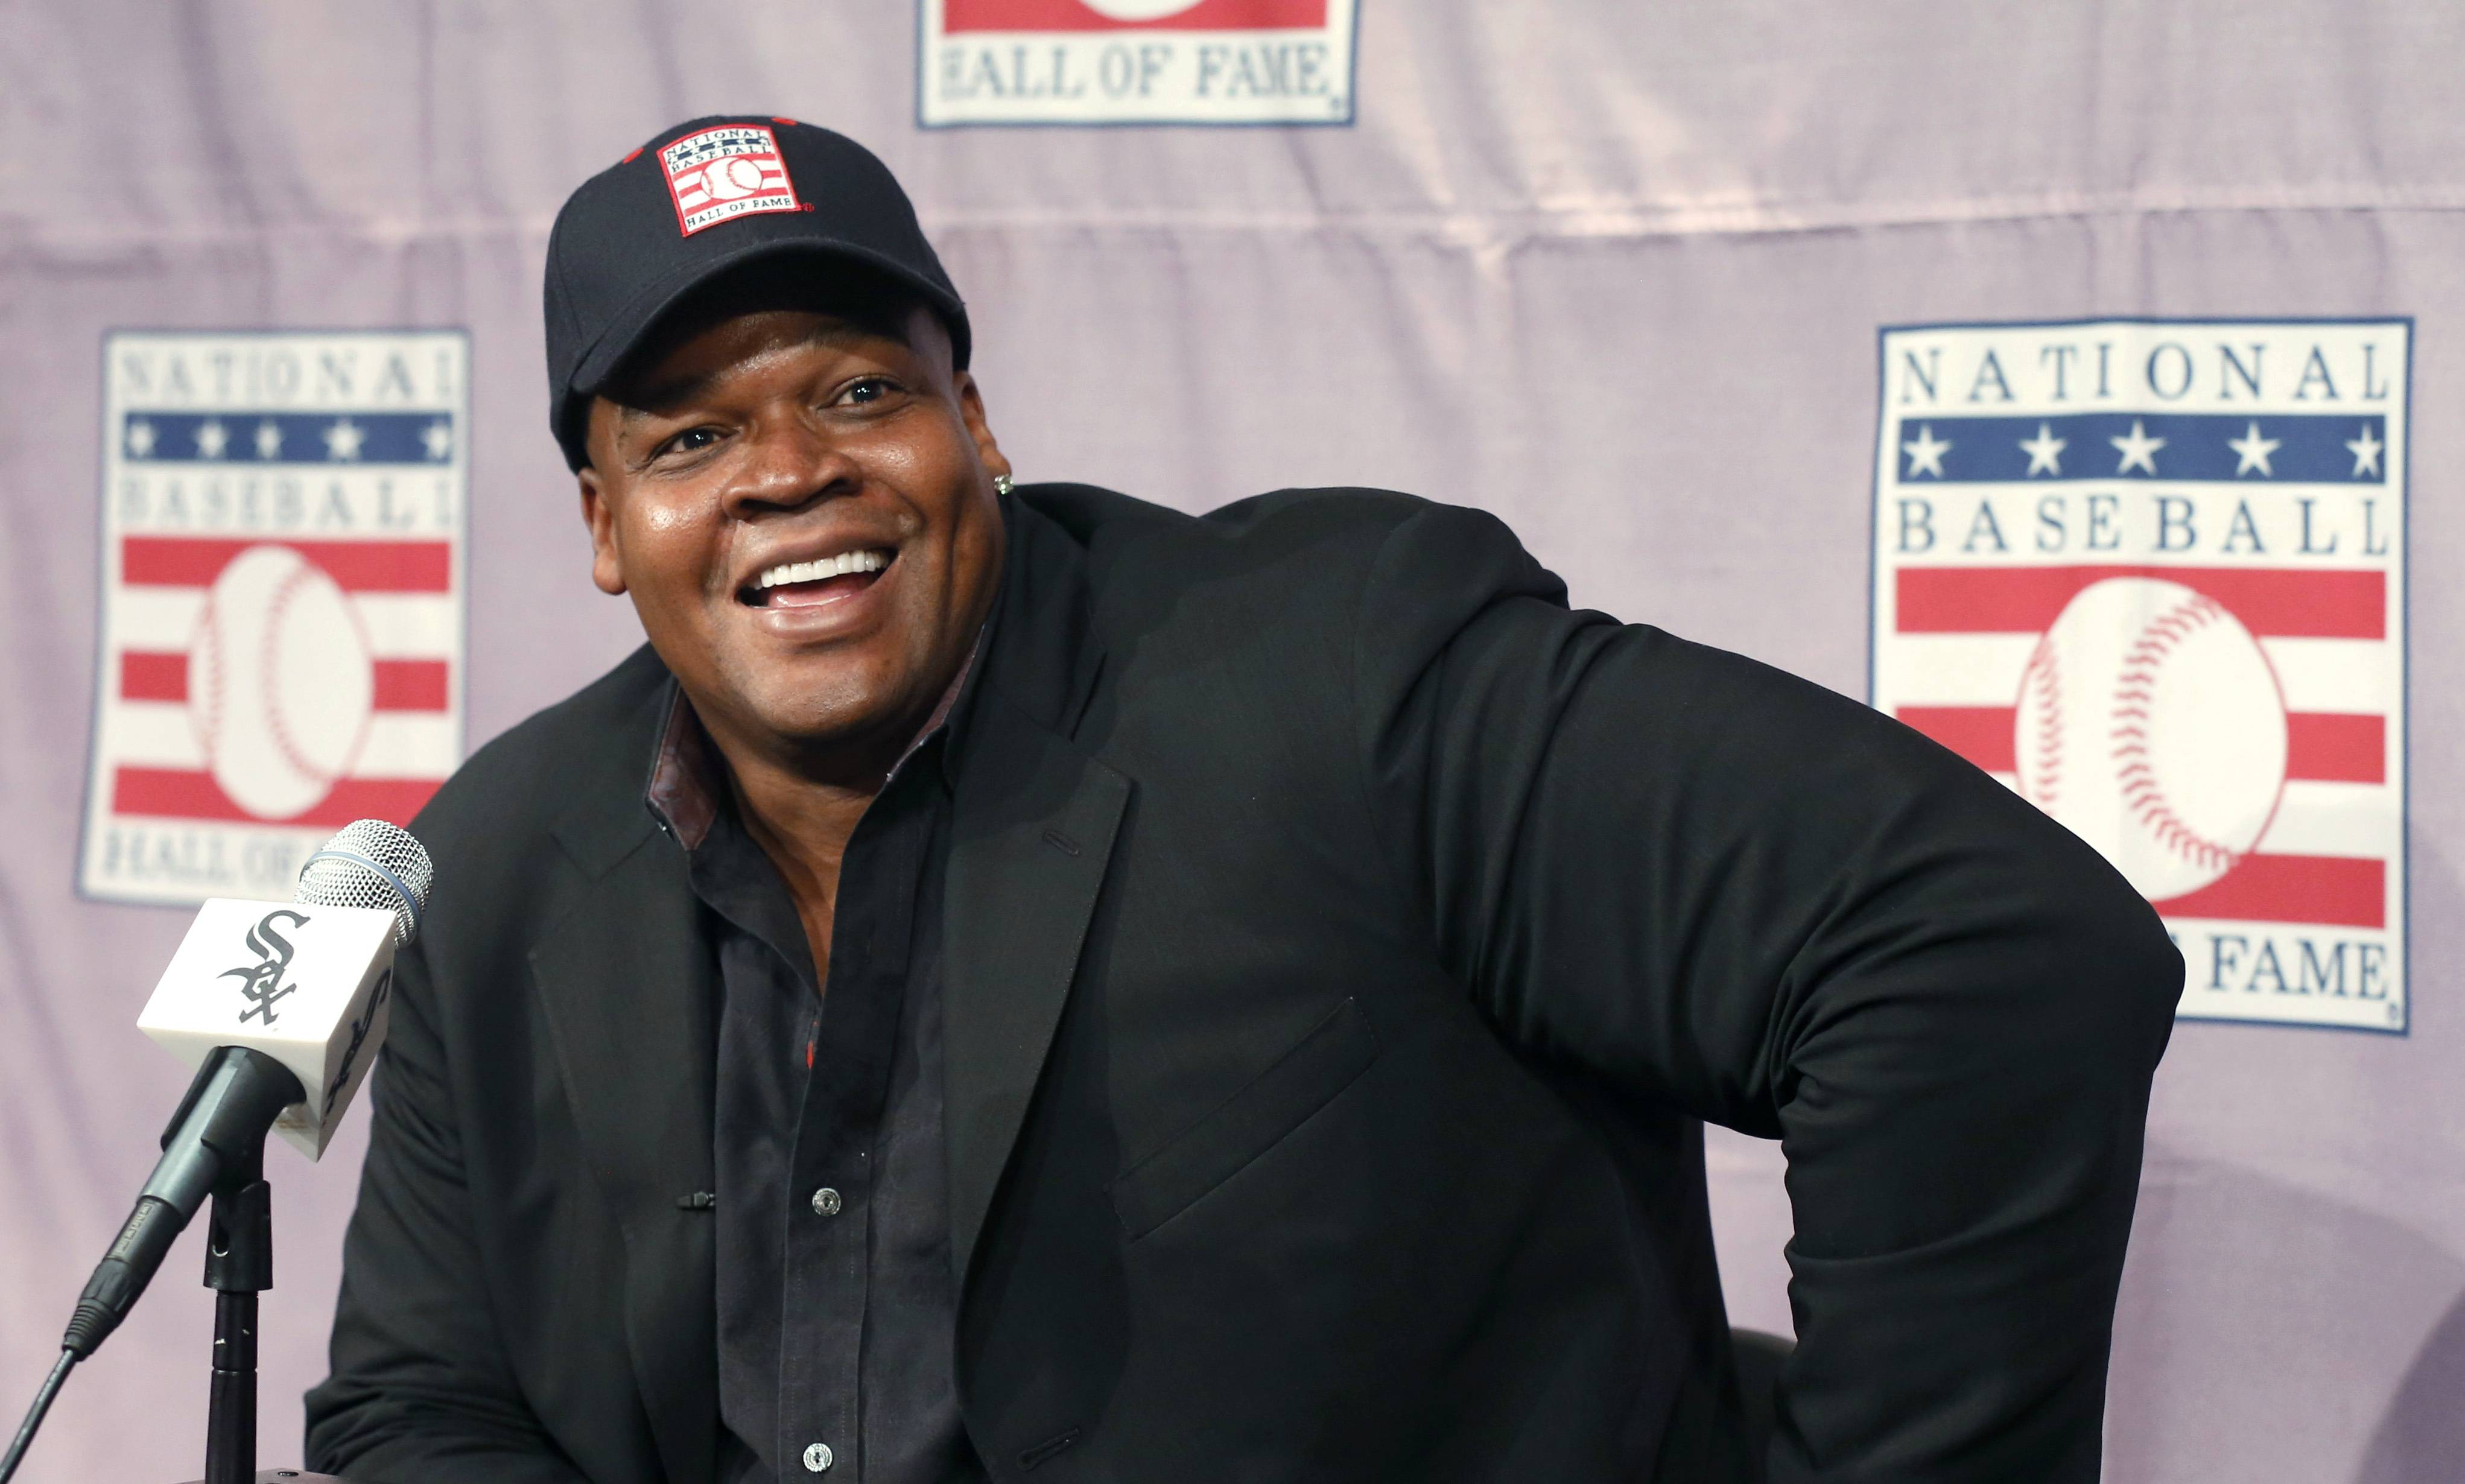 Frank Thomas will join Greg Maddux and Tom Glavine as players inducted into the Hall of Fame this summer, and he'll also join Fox Sports 1 as an analyst.